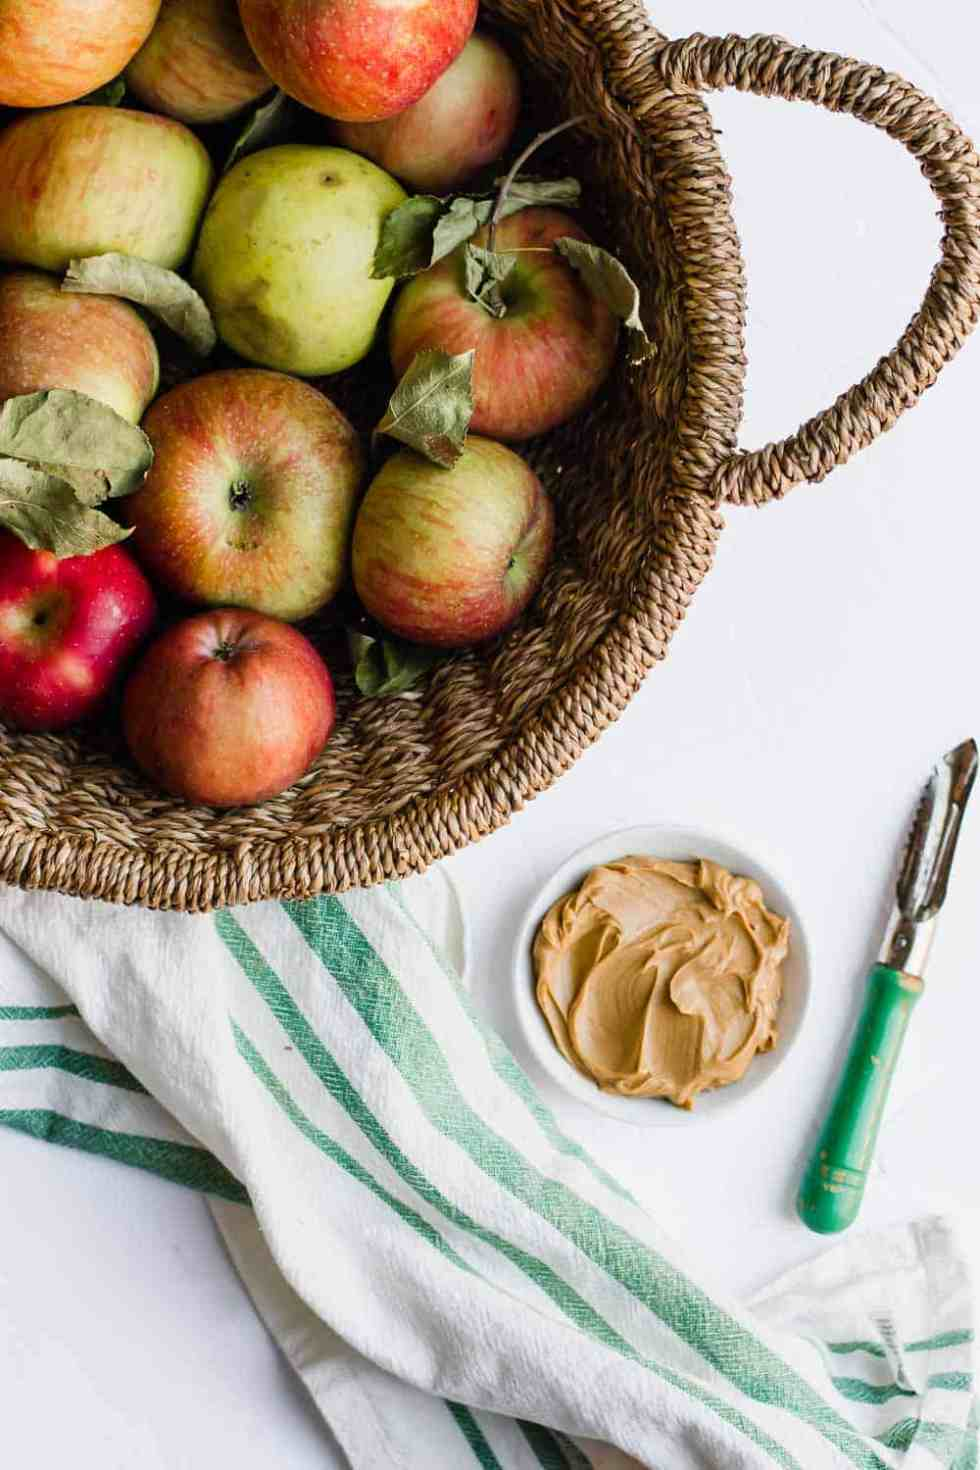 Make this apple and peanut butter sandwich as an easy and healthy snack. Naturally gluten-free and vegan, this can also be made nut-free. Whip this together in under 5 minutes for a snack the whole family will love. || The Butter Half #easysnacks #easysnackidea #healthysnacks #glutenfreesnacks #vegansnacks #quicksnacks #thebutterhalf